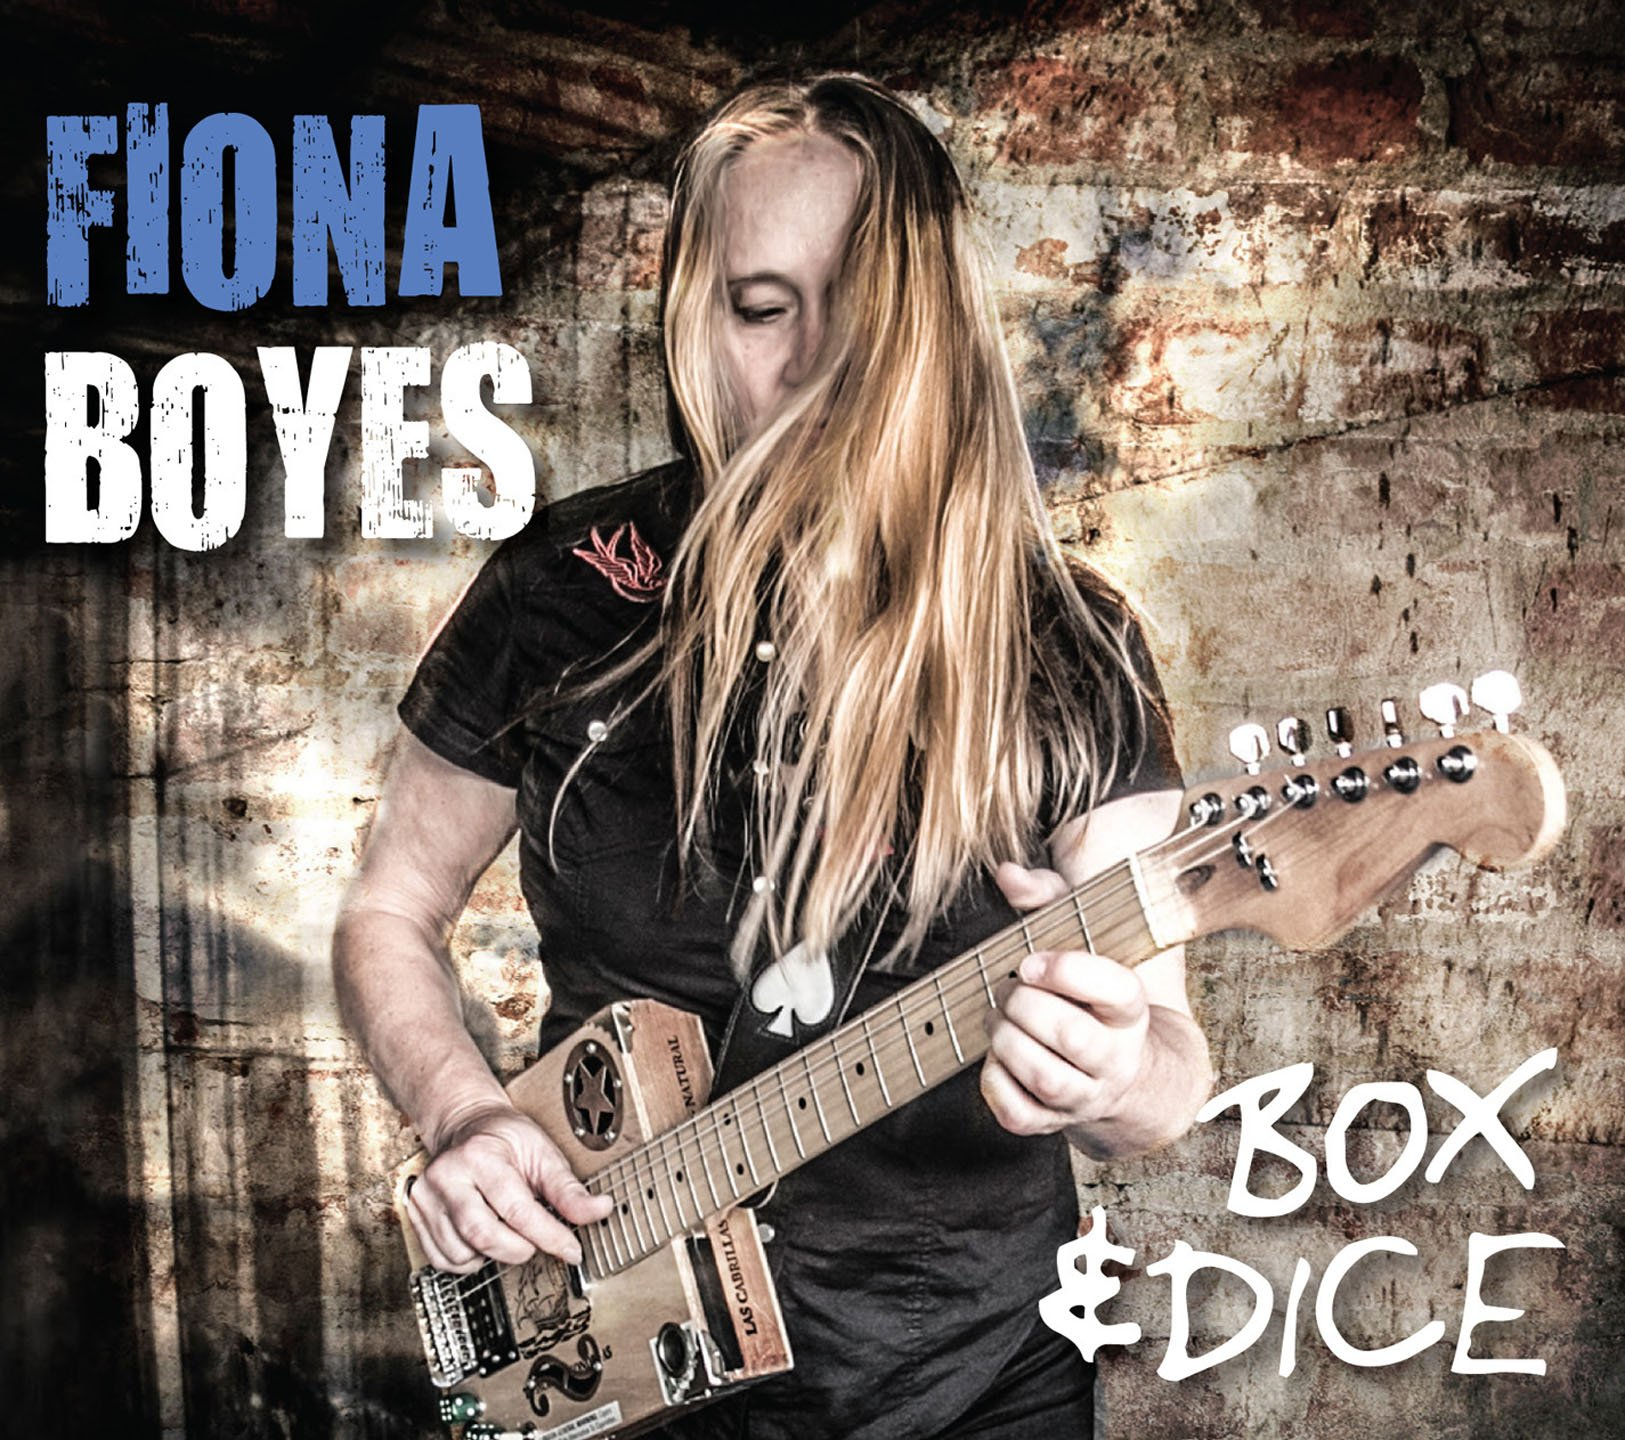 Fiona Boyes - Box & Dice (2015) [FLAC] Download